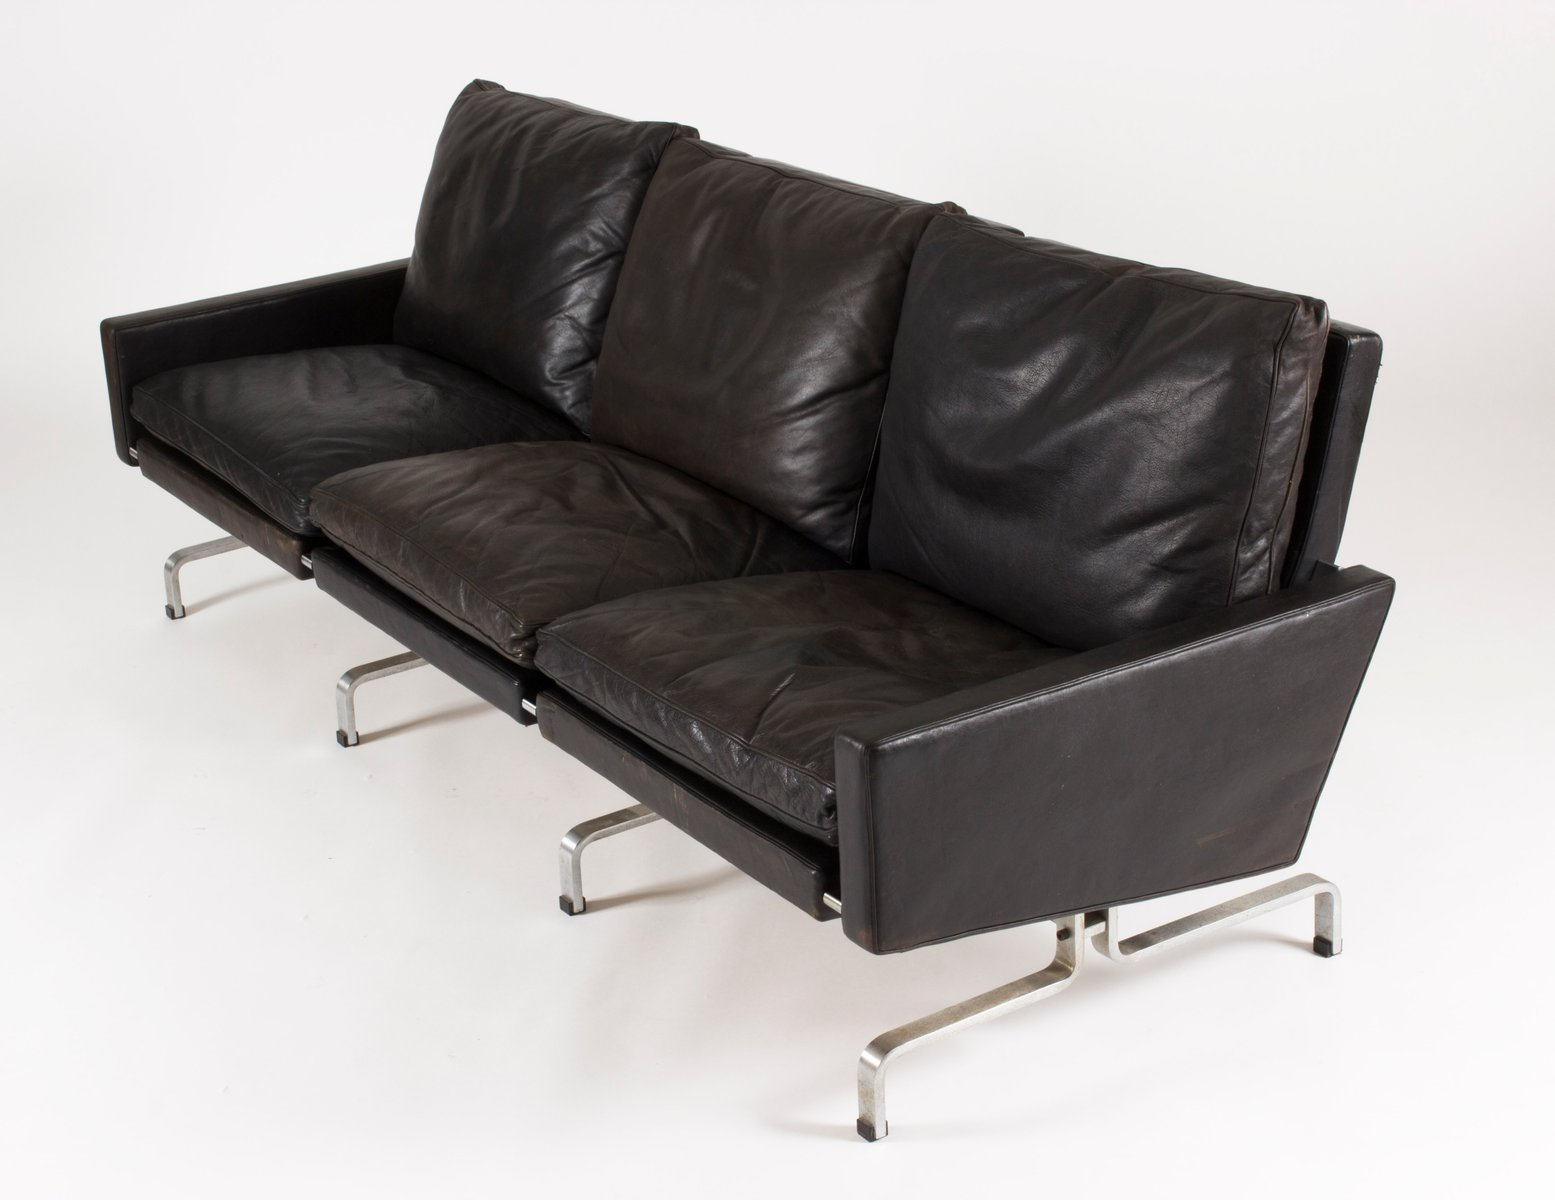 Pk 31 3 seater leather sofa by poul kjaerholm for e kold for Leather sofa 7 seater